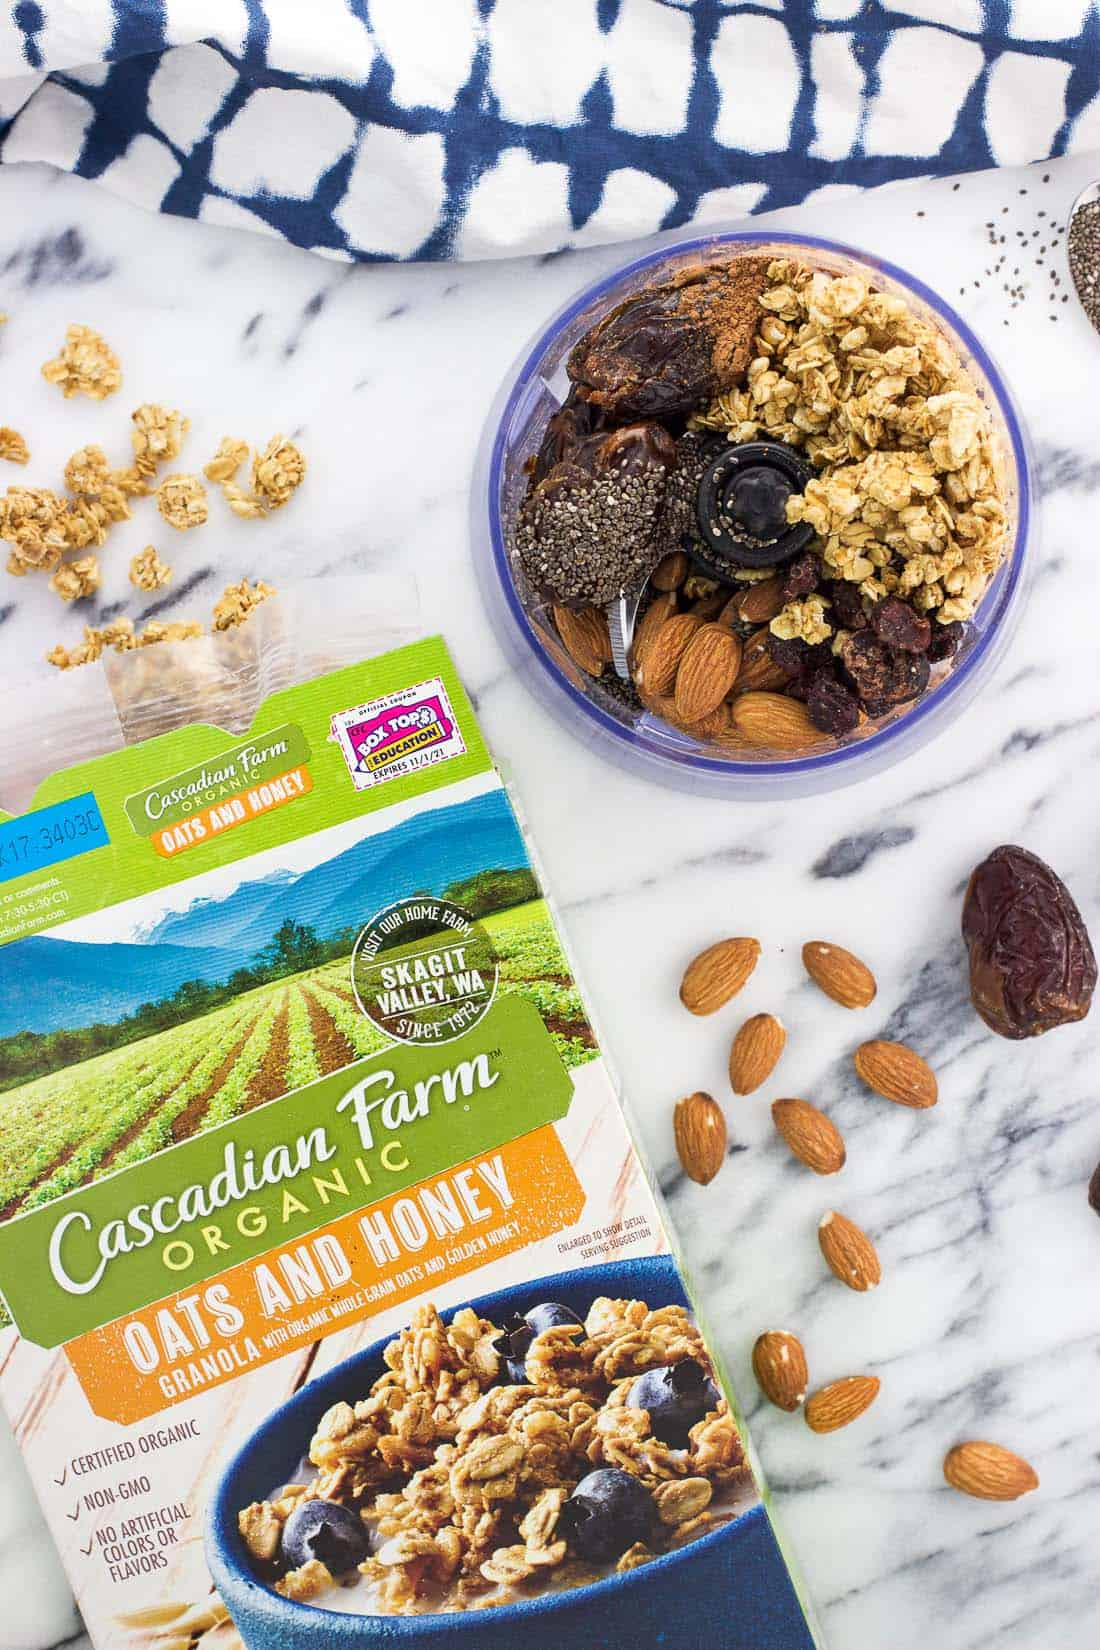 Chia trail mix bars combine all of your favorite trail mix flavors in a hearty and chewy snack bar. Customize these date-based bars with your favorite ingredients for a healthy snack your whole family will love.